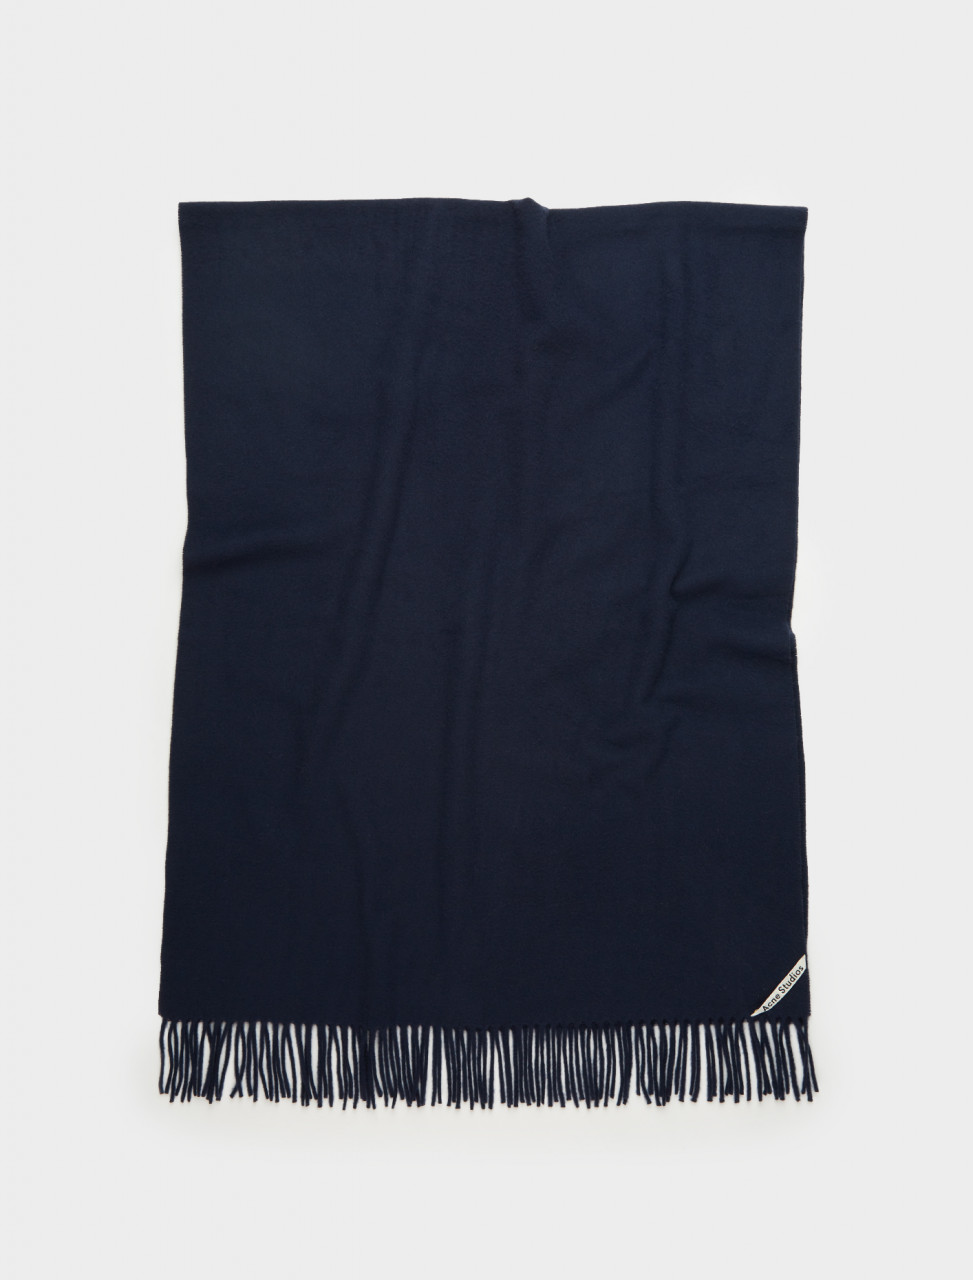 110-271176-8850 ACNE STUDIOS CANADA OVERSIZED WOOL SCARF NAVY BLUE